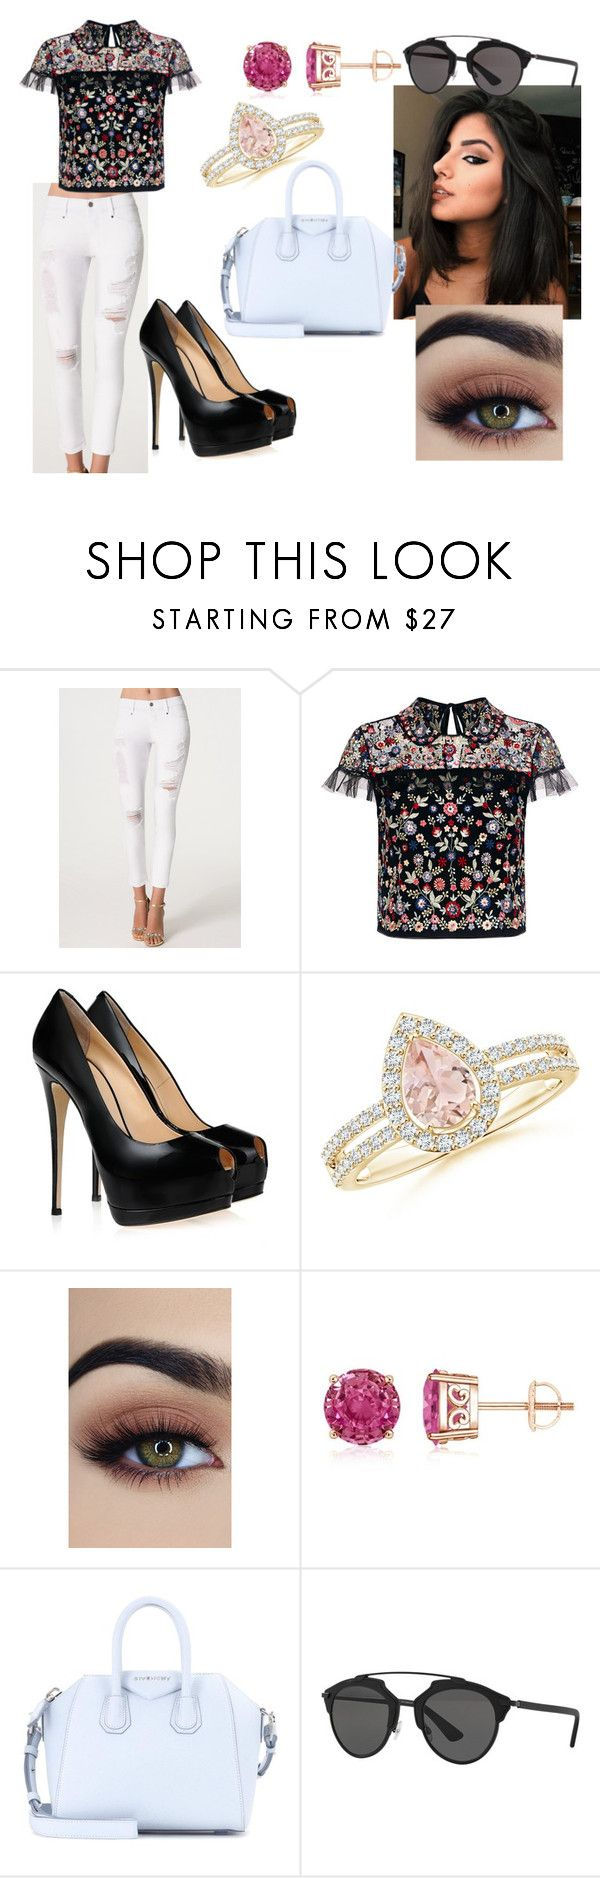 """""""Hannah"""" by mrstomlinson974 on Polyvore featuring Bebe, Needle & Thread, Giuseppe Zanotti, Givenchy and Christian Dior"""